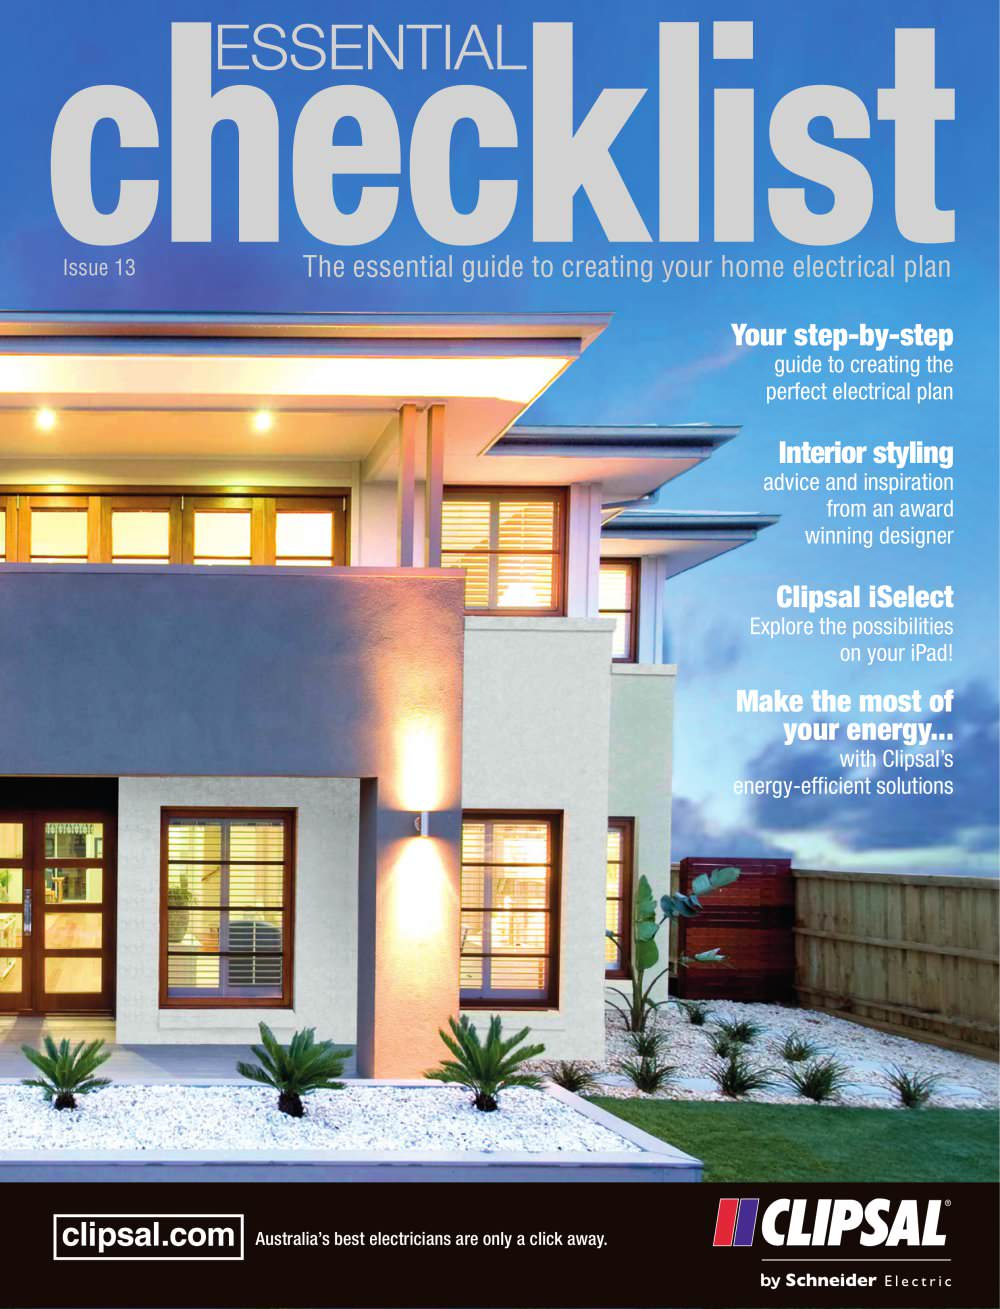 2013 essential checklist, the essential guide to creating your home2013 essential checklist, the essential guide to creating your home electrical plan 1 112 pages